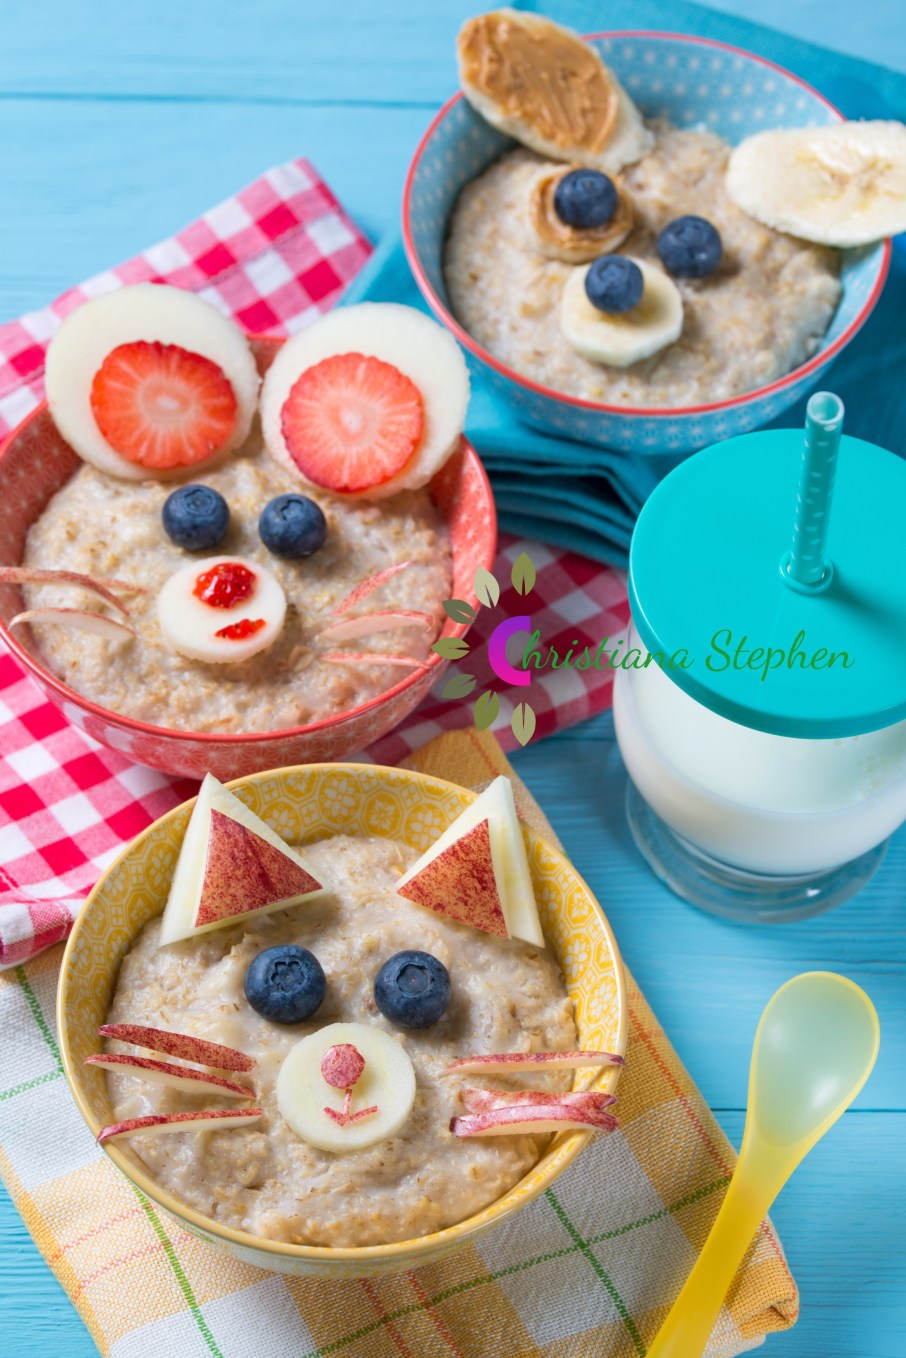 Funny bowls with oat porridge with cat, dog and mouse faces made of fruits and berries, food for kids idea